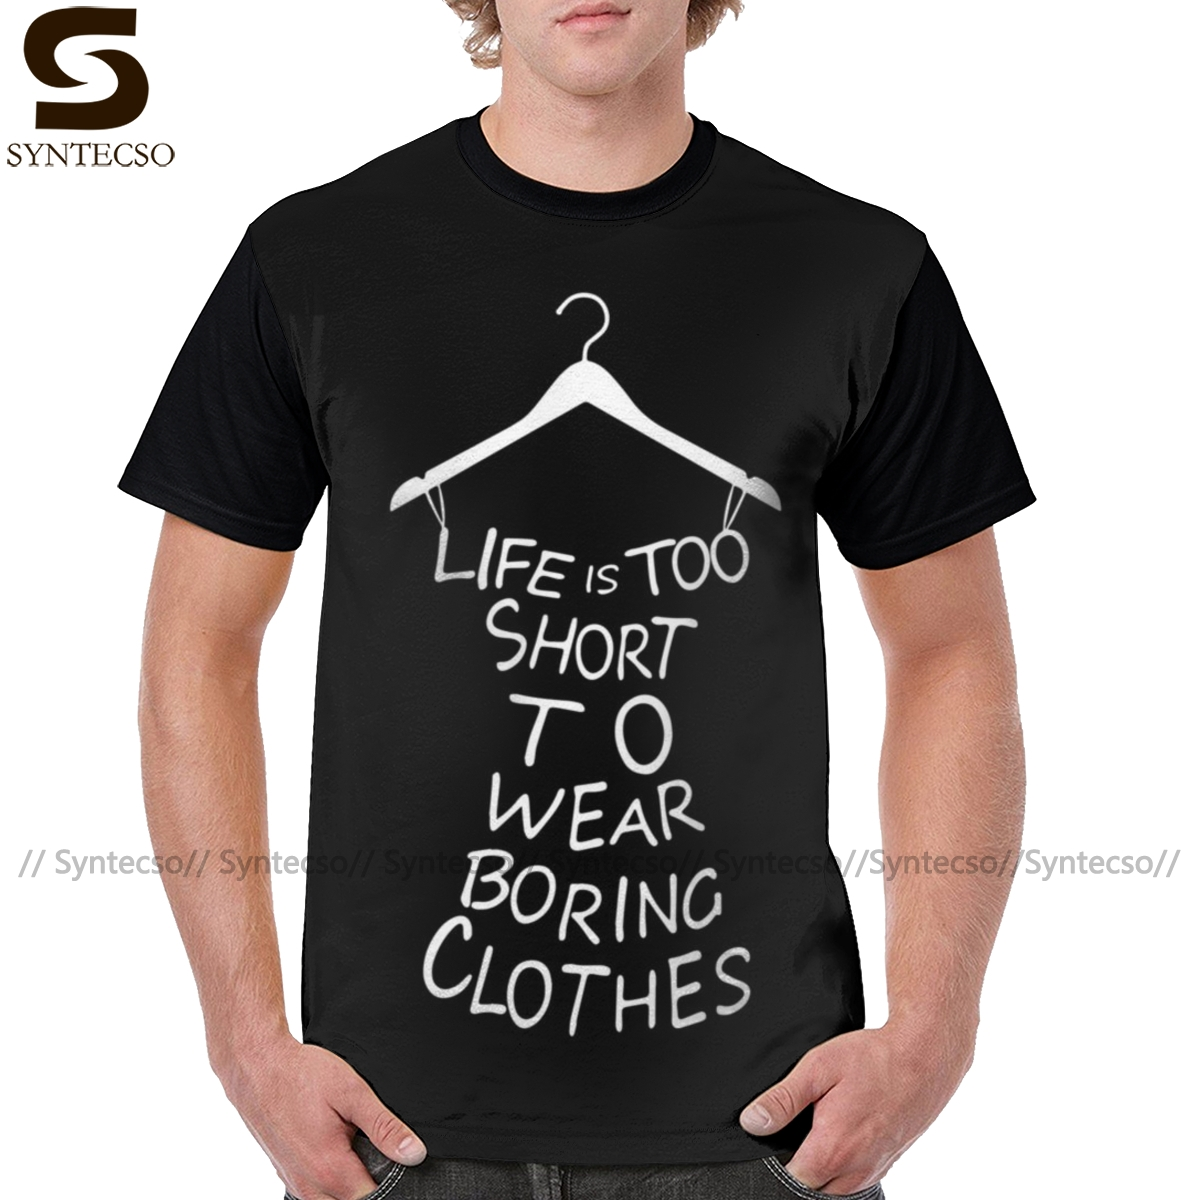 Life Is <font><b>Boring</b></font> <font><b>T</b></font> <font><b>Shirt</b></font> Life Is Too Short <font><b>T</b></font>-<font><b>Shirt</b></font> Mens Funny Tee <font><b>Shirt</b></font> Fashion Print Graphic Tshirt image